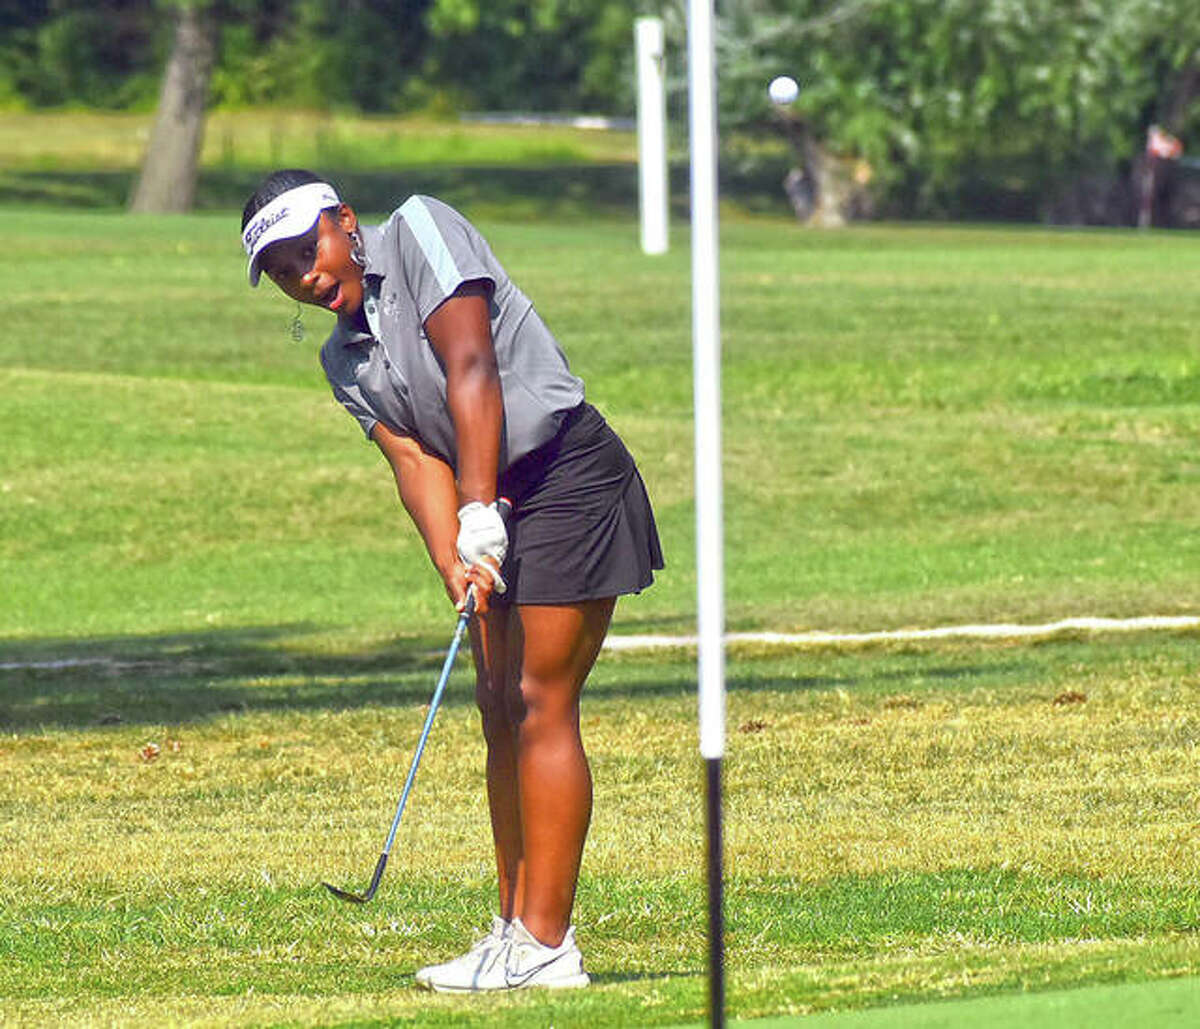 """The Edwardsville girls golf match against O'Fallon on Tuesday at Oak Brook Golf Club was rained out after 12 holes. The Tigers and Panthers were playing a Ryder Cup format for a """"fun day"""" on the links for the two Southwestern Conference programs."""